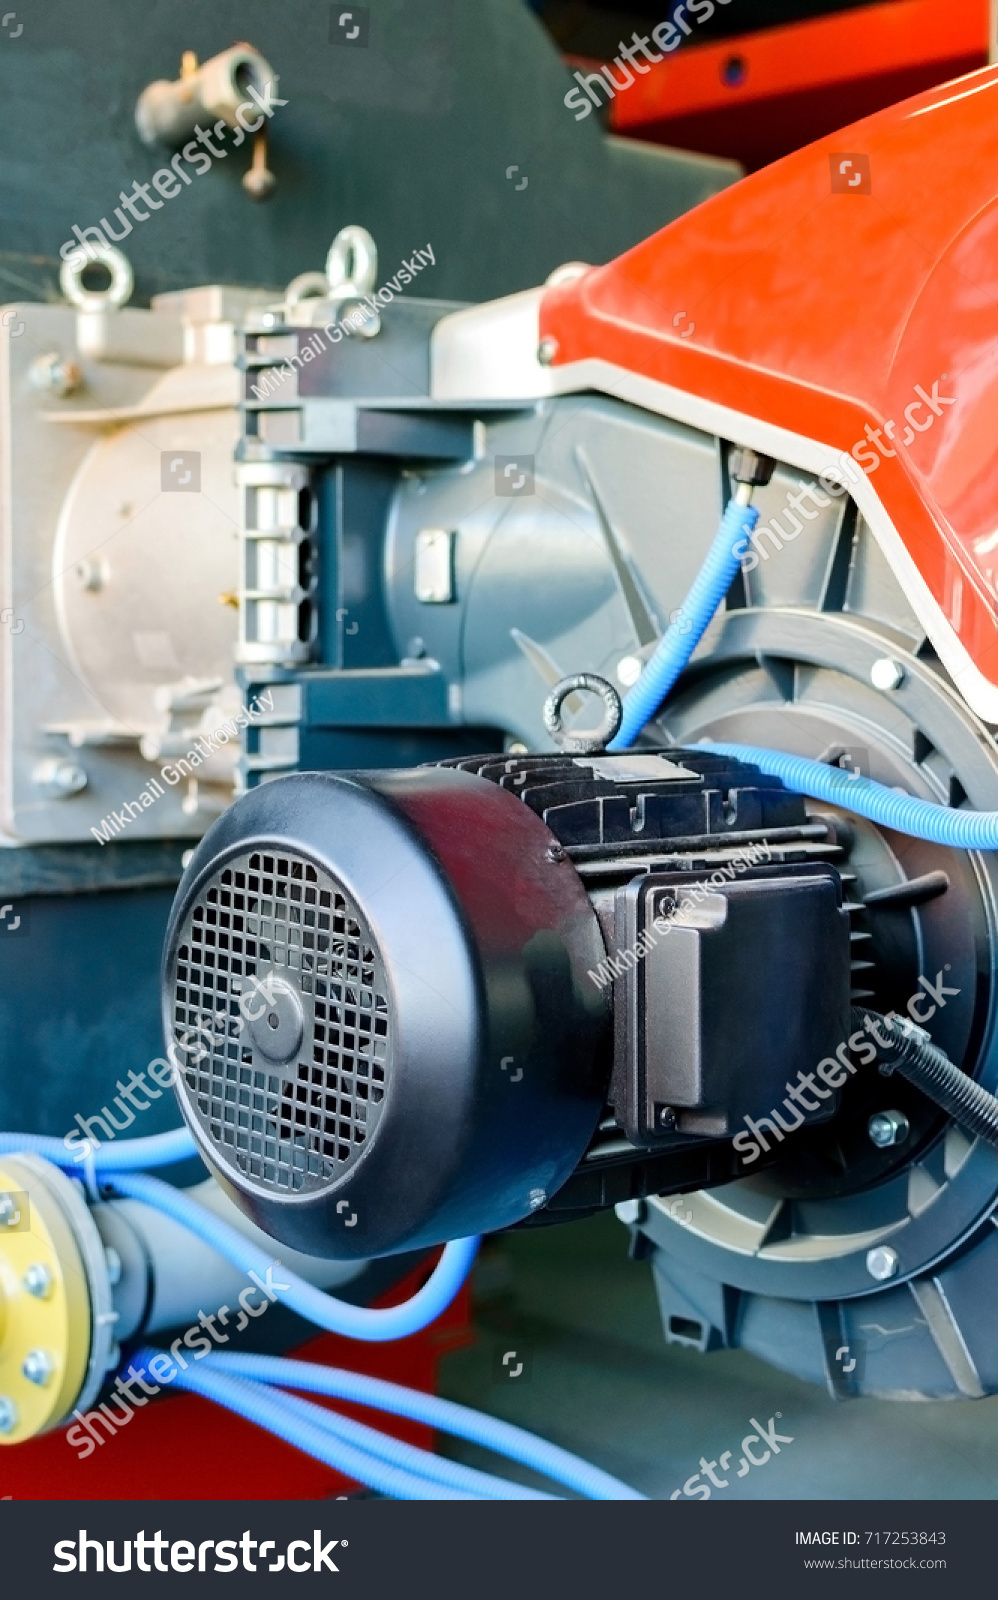 Modern Boiler Room Equipment High Power Stock Photo (Edit Now ...